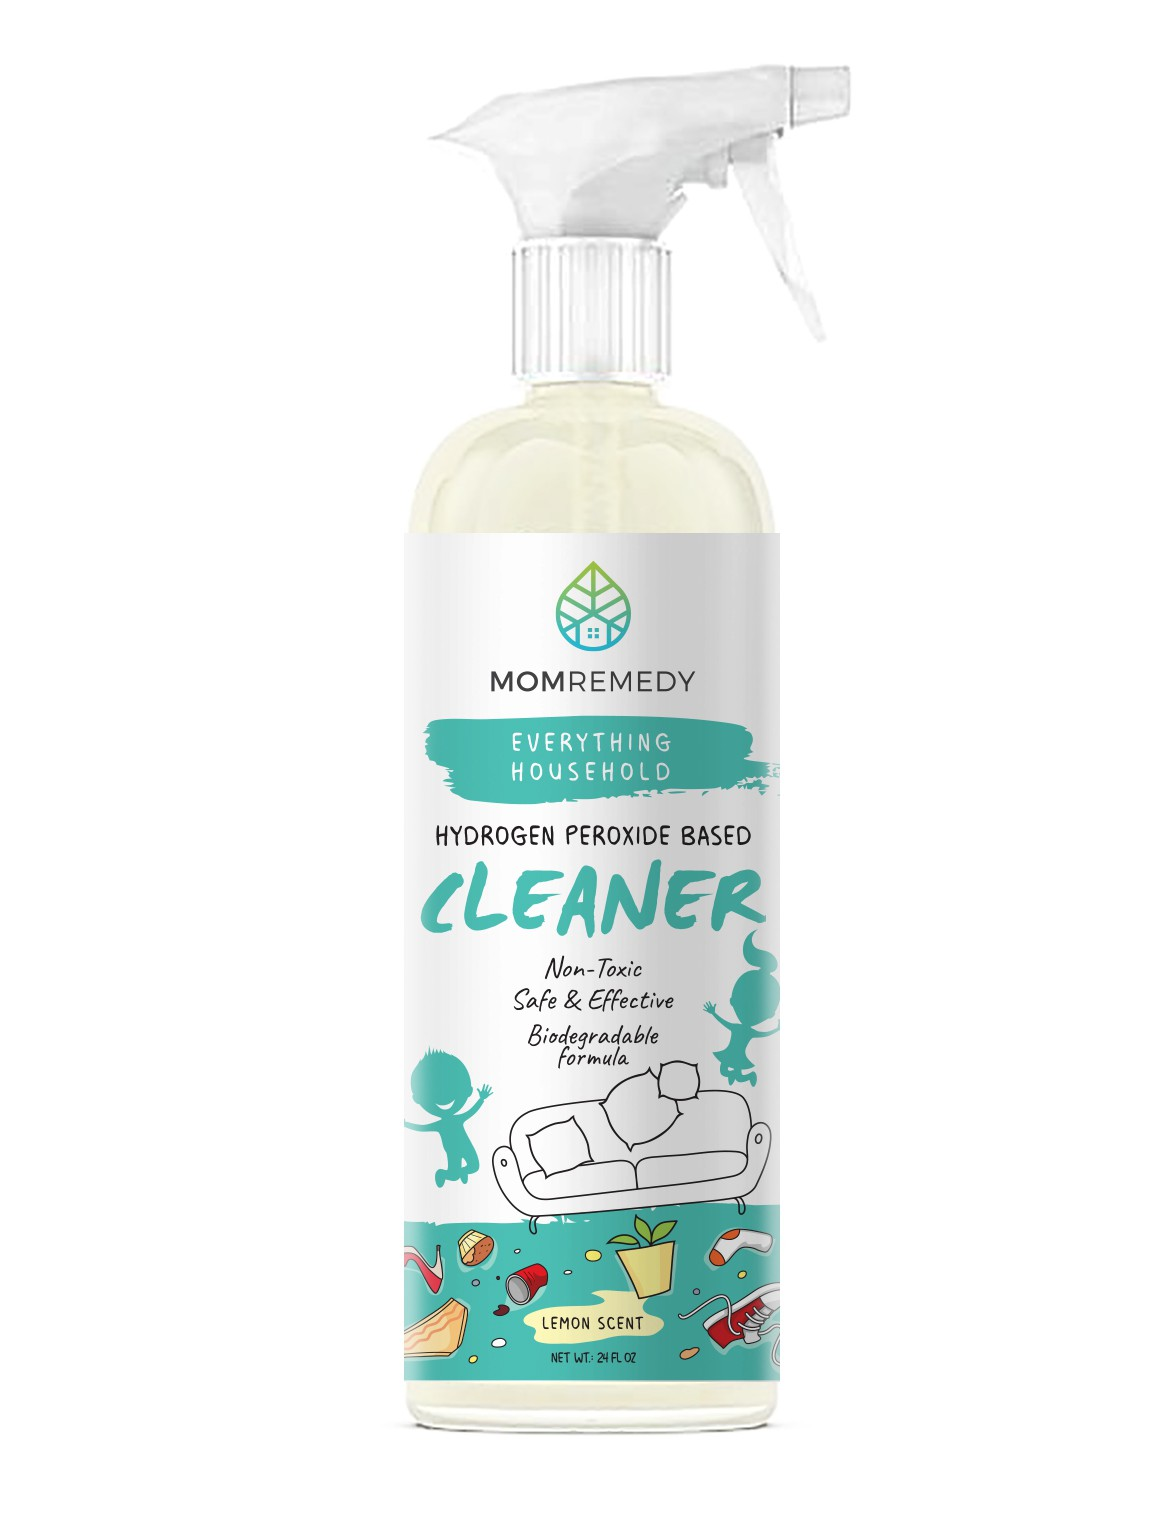 Label for a household cleaner